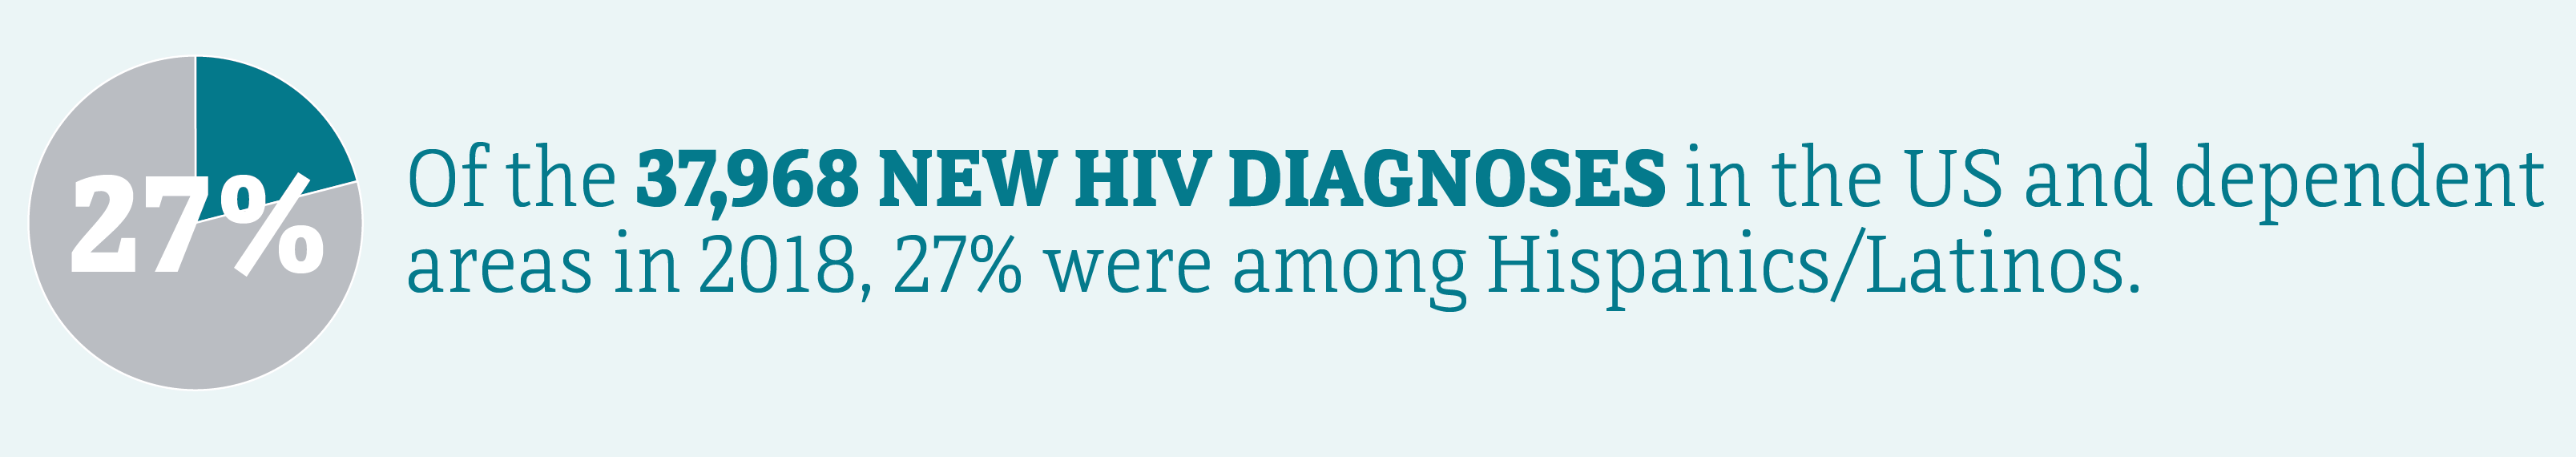 This banner shows 26% of the 38,739 new HIV diagnoses in the United States and dependent areas were among Hispanics/Latinos, 22% were among Hispanic/Latino men, and 3% were among Hispanic women/Latinas.